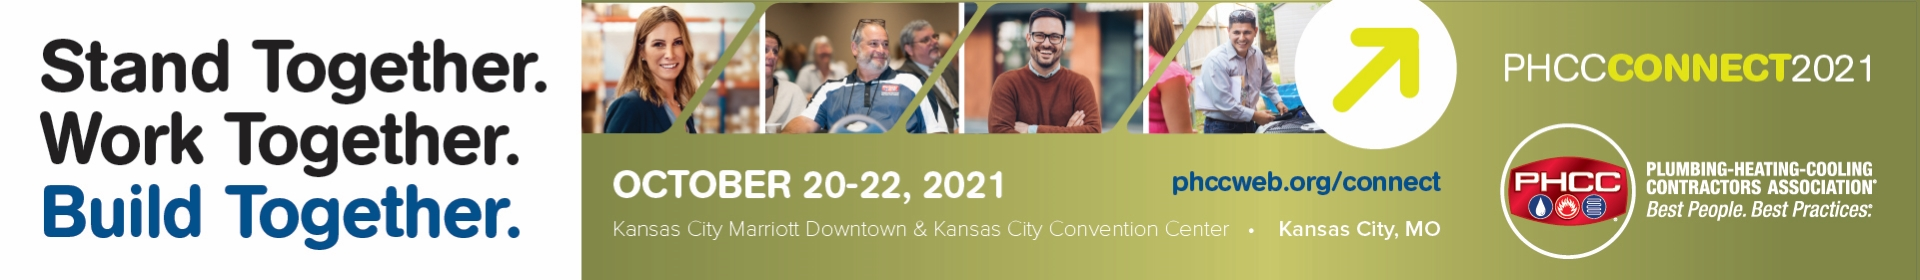 PHCCCONNECT2021 Event Banner